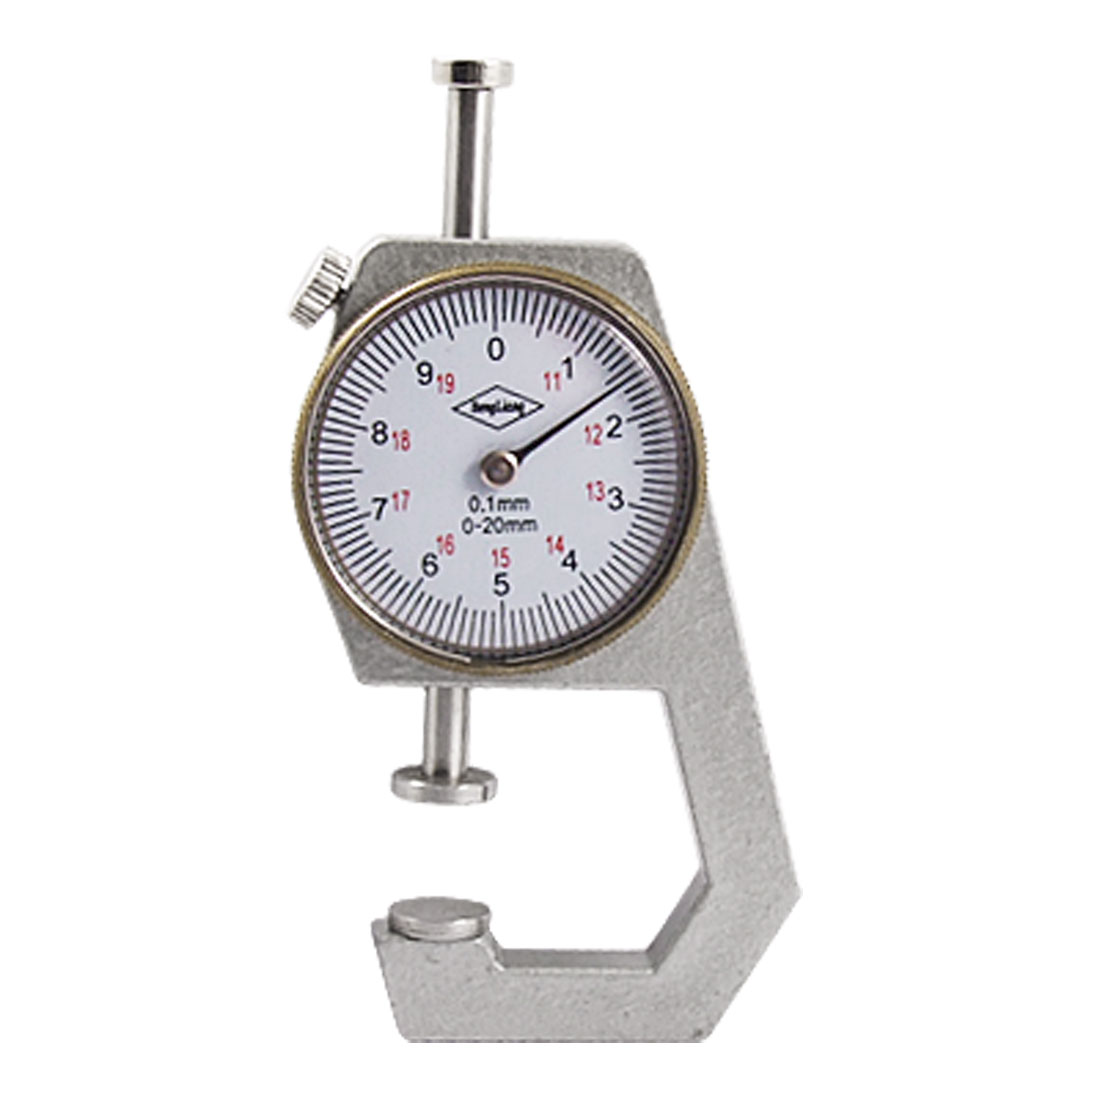 Dial Thickness Gauge Gage Measuring Tool 0 to 20mm